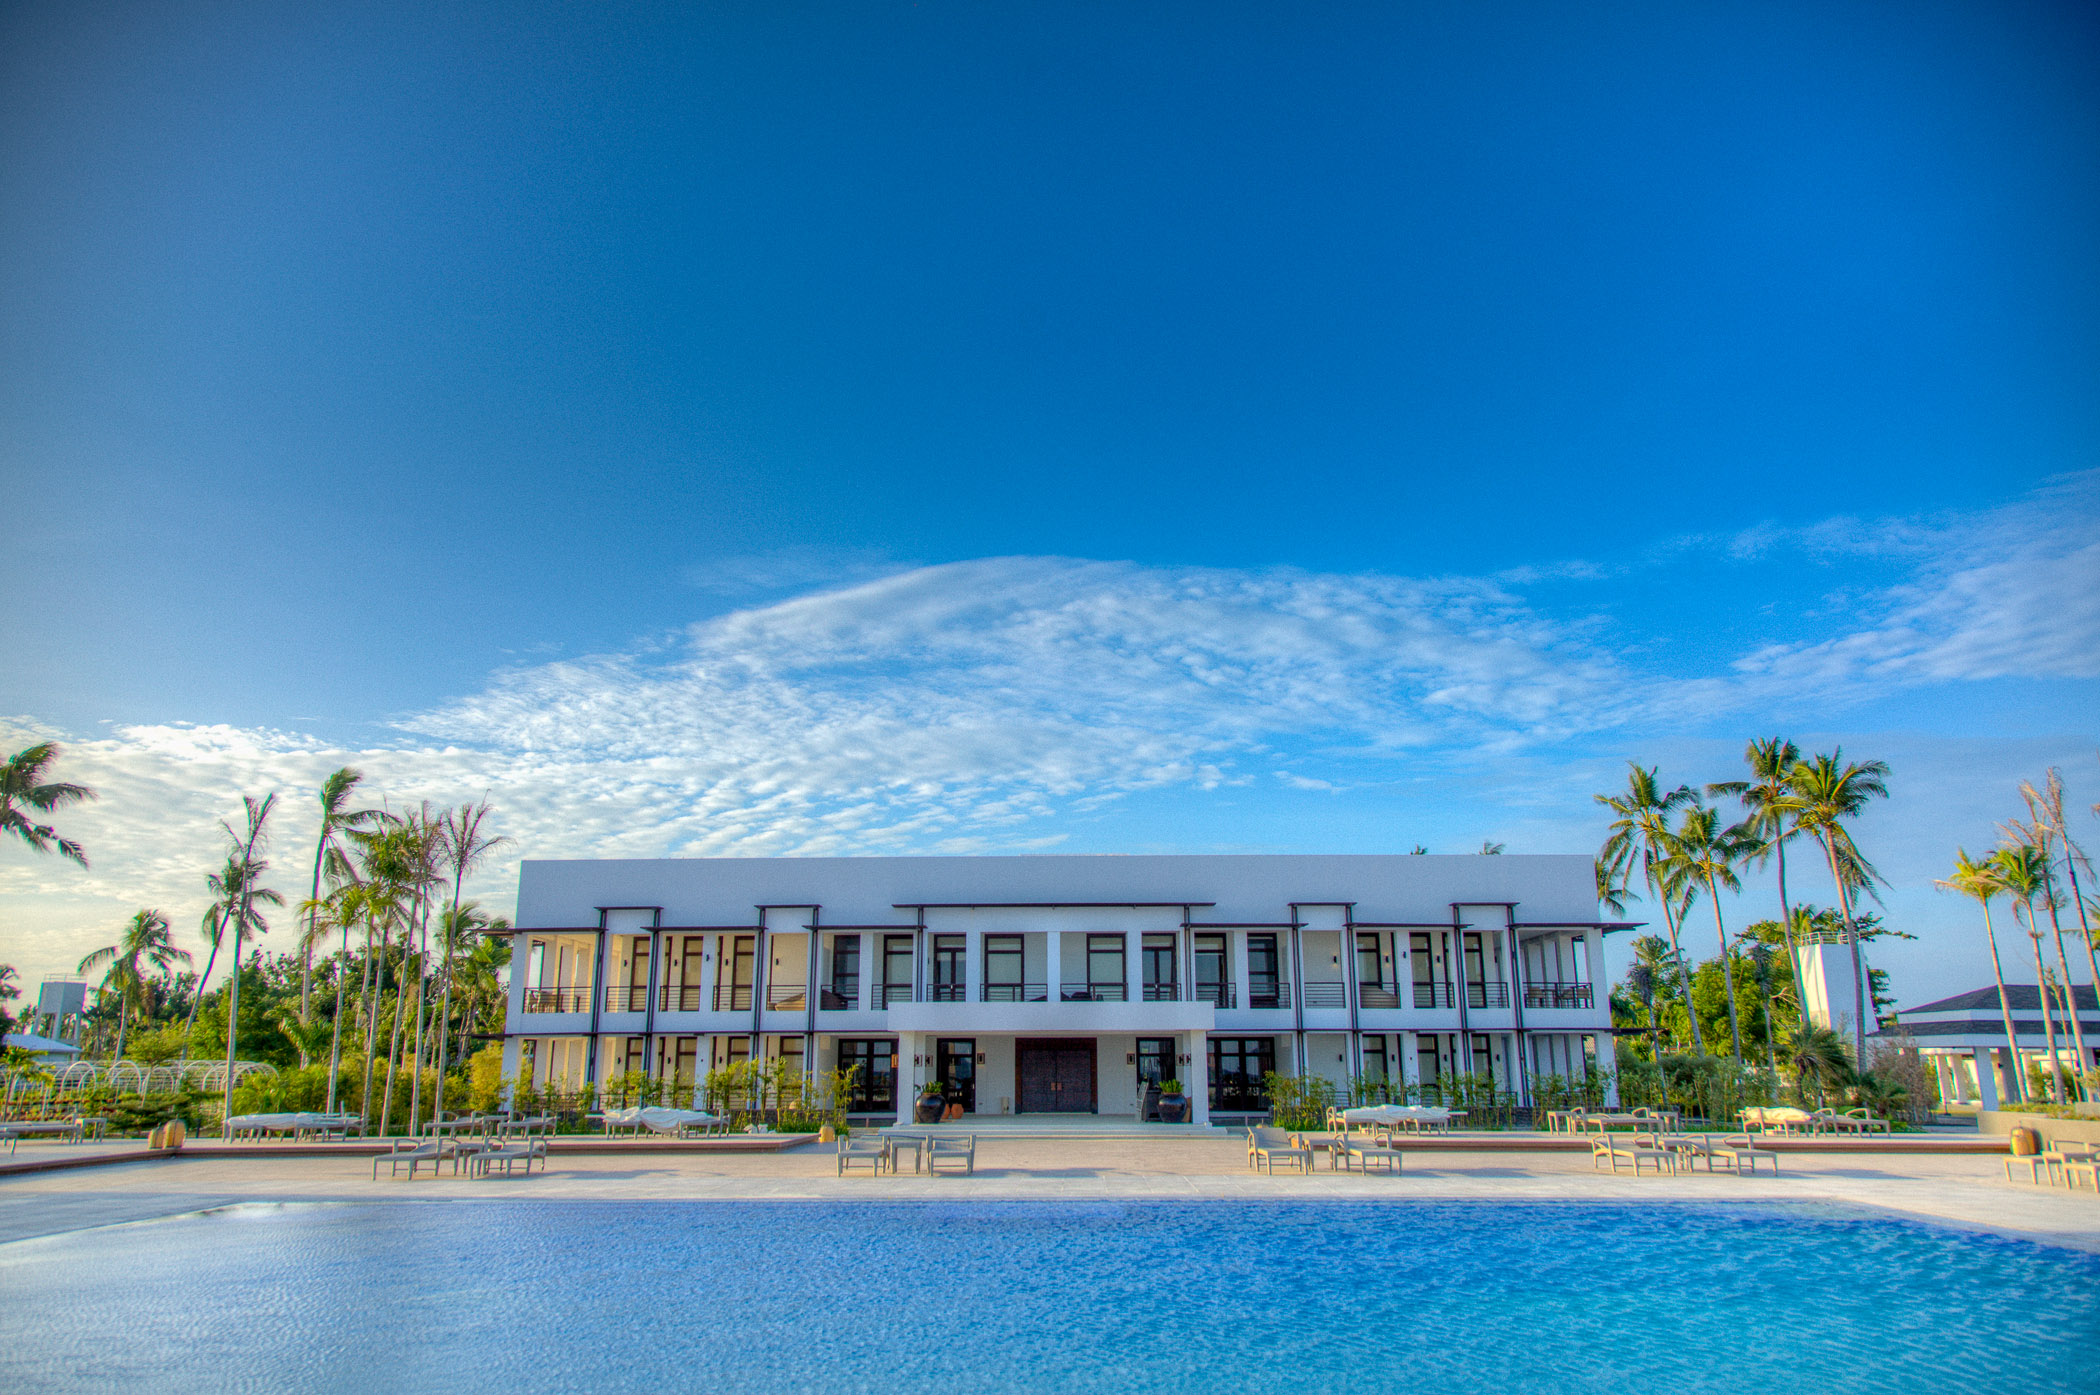 Main building during the day // Photo by Kandaya Resort